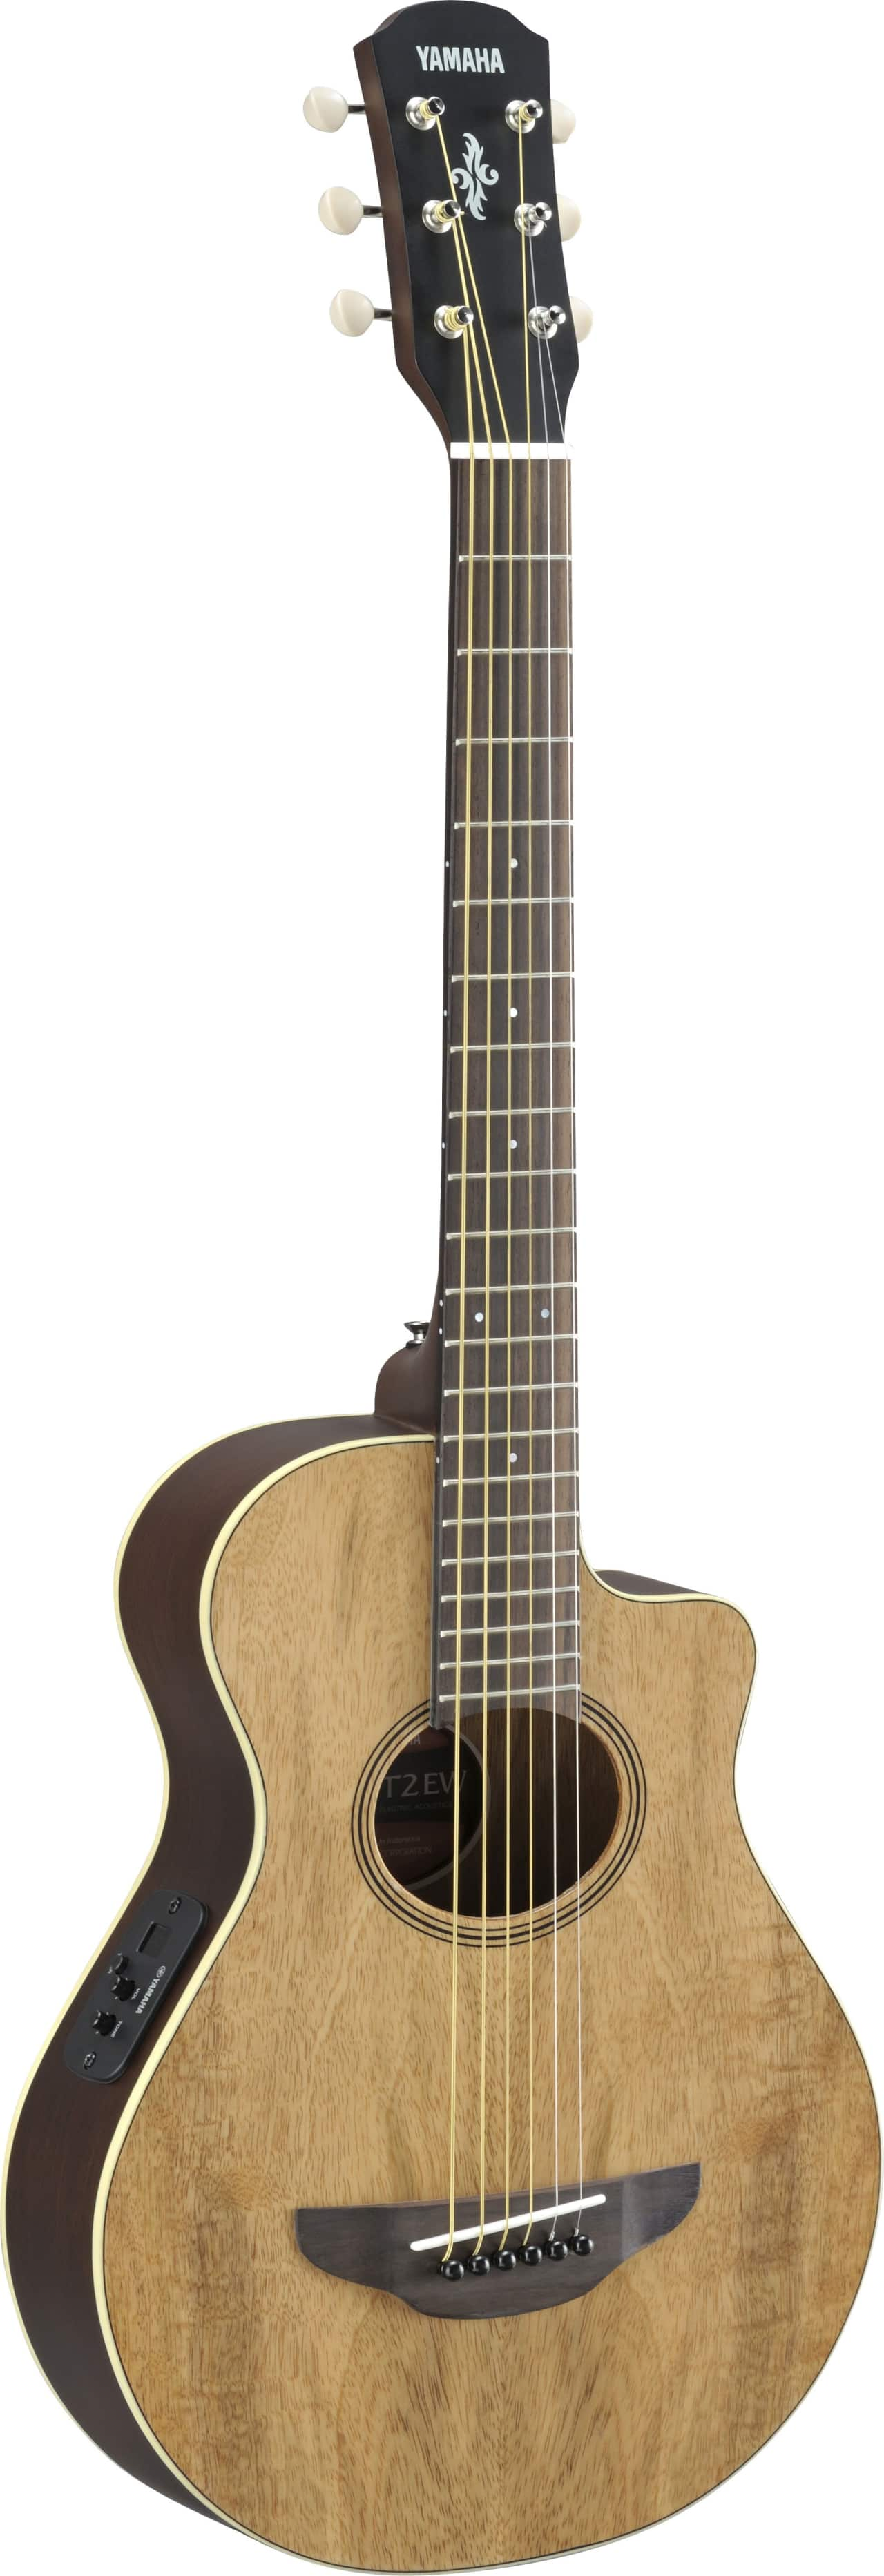 Brand new yamaha apxt2ewnt 3 4 scale acoustic electric for Yamaha guitar brands